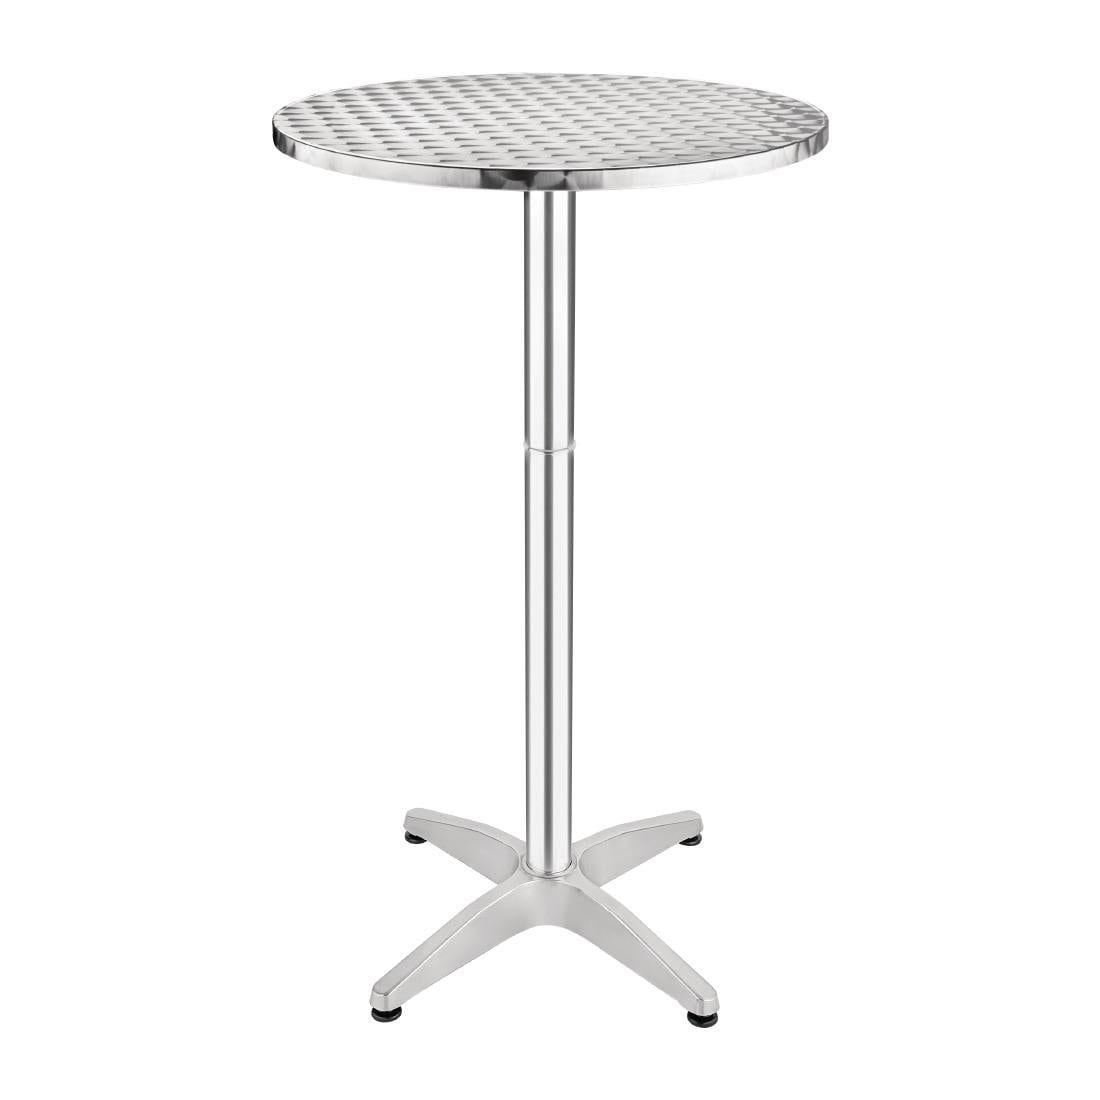 Krisco Tall Poseur Table Stainless Steel 105 Cm High Indoor Outdoor Table